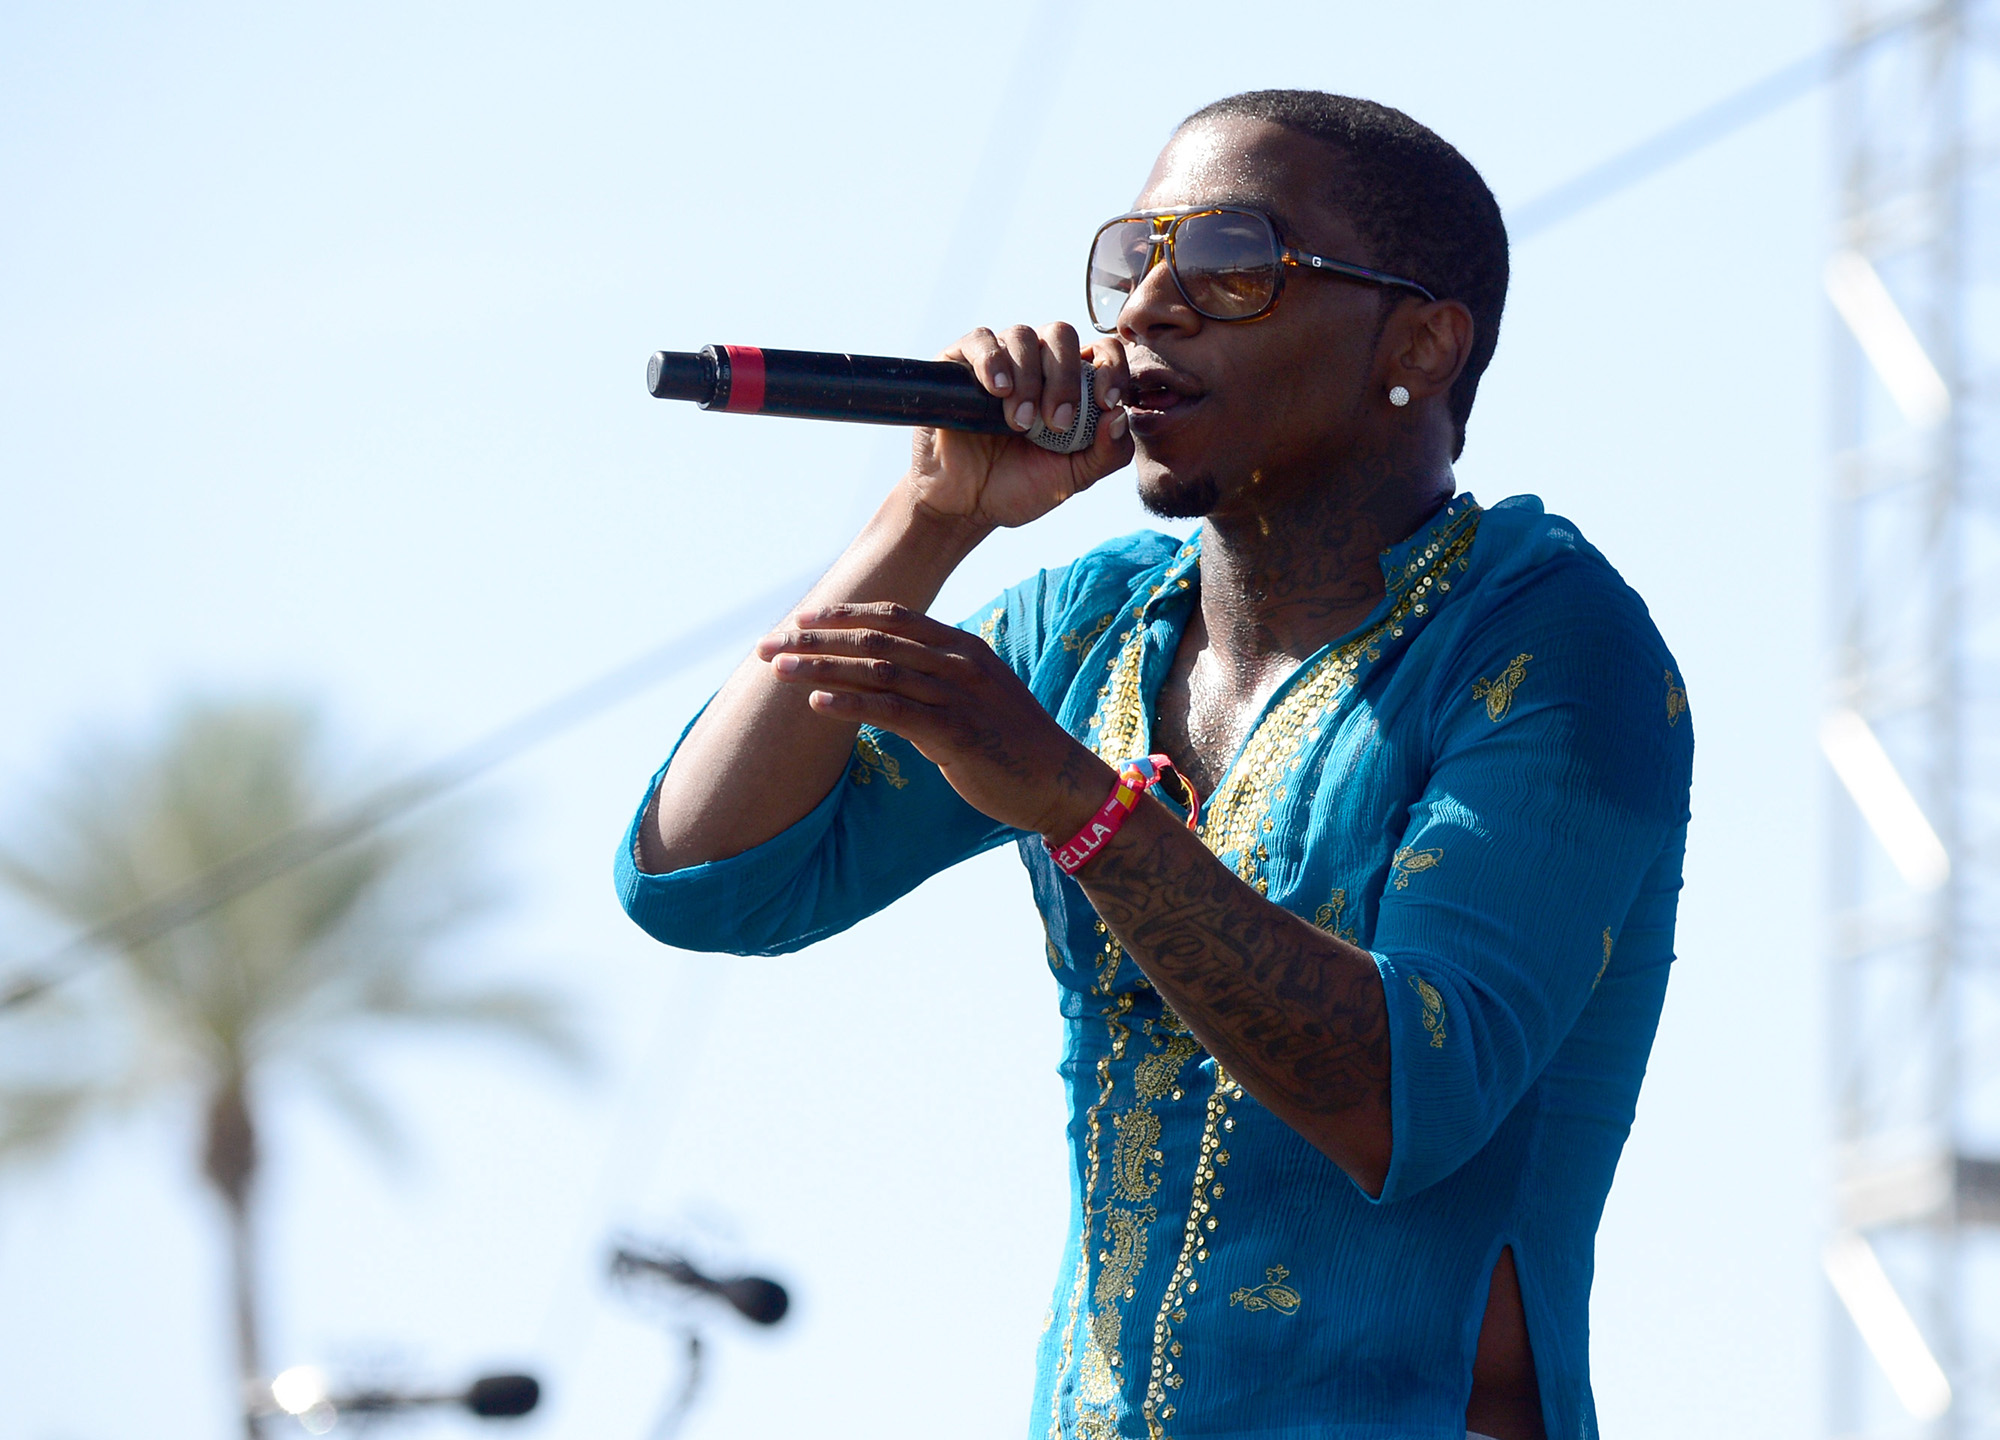 Lil B performs onstage during day 1 of the 2015 Coachella Valley Music & Arts Festival (Weekend 1) at the Empire Polo Club on April 10, 2015 in Indio, California.  (Photo by Frazer Harrison/Getty Images for Coachella)